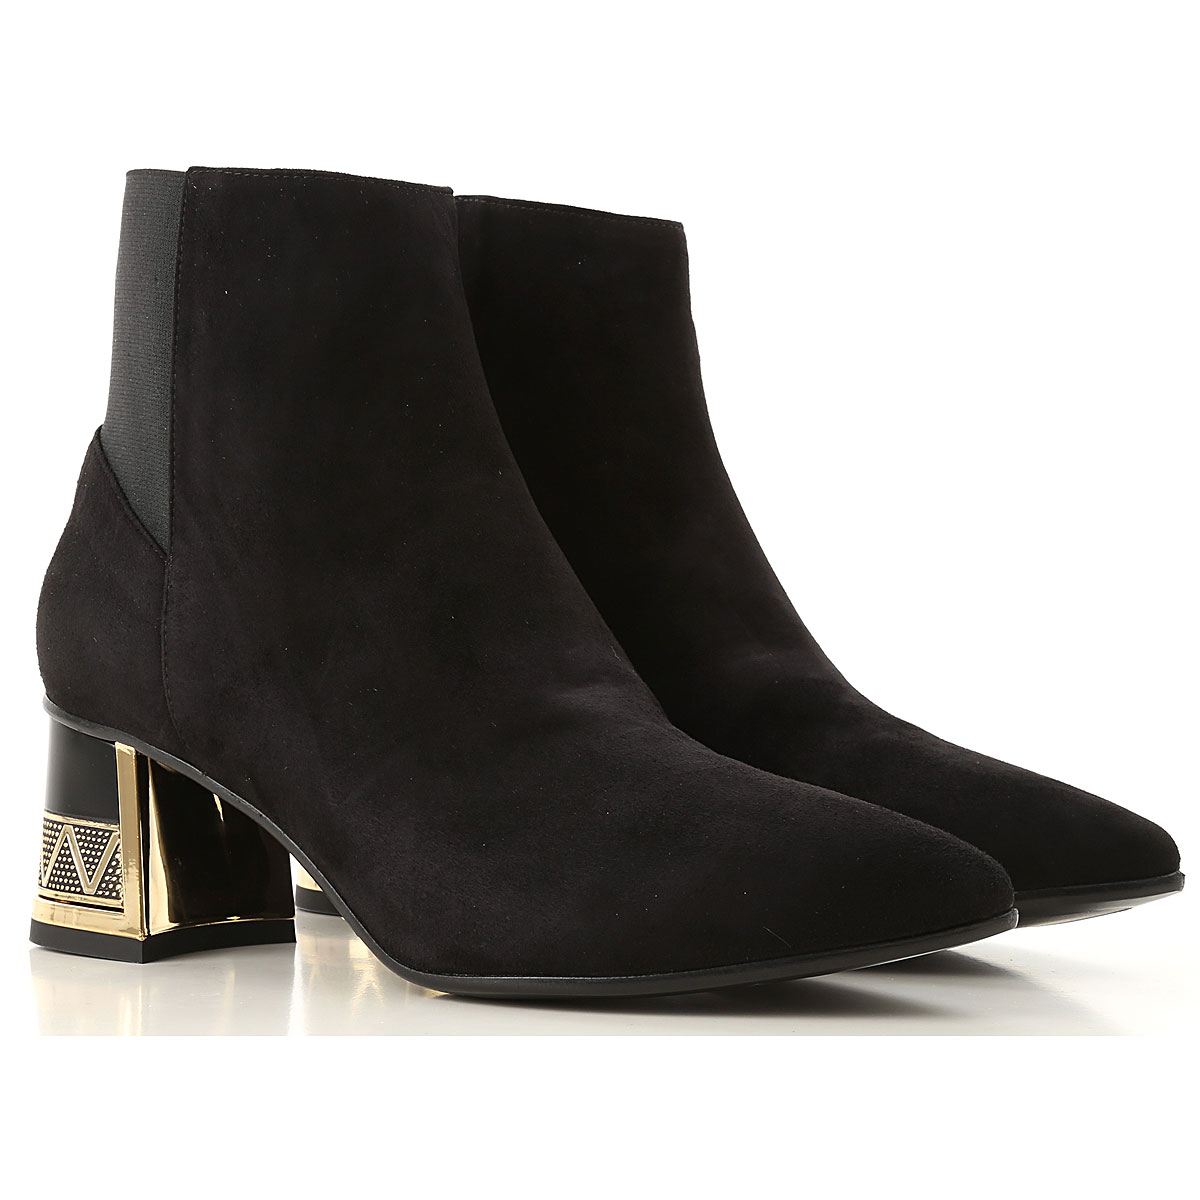 Image of Alberto Guardiani Boots for Women, Booties, Black, Suede leather, 2017, 10 6 7 8 9